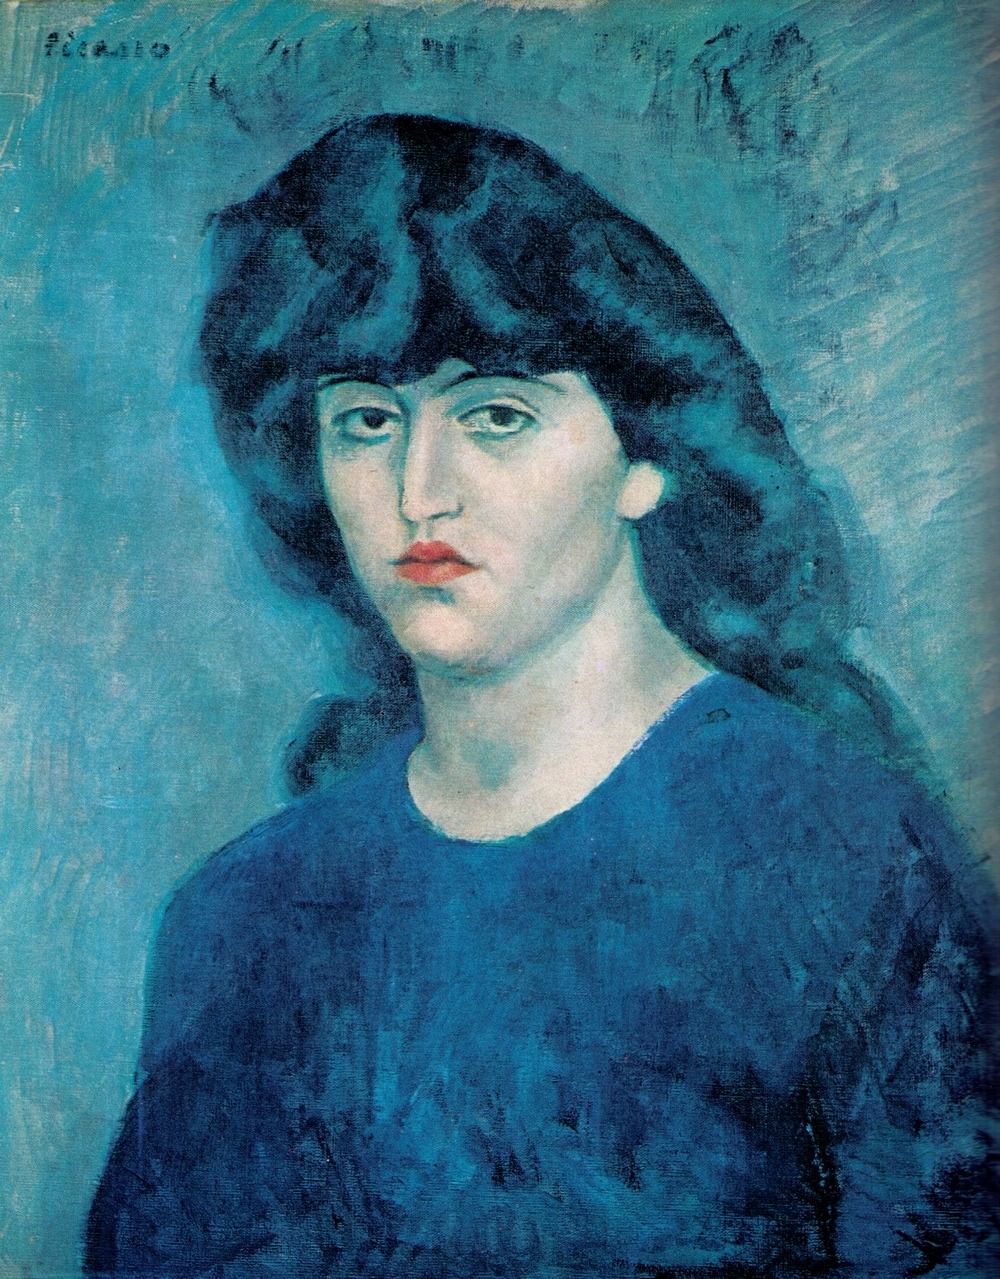 Pablo picasso blue period 1901 1904 for Picasso painting names